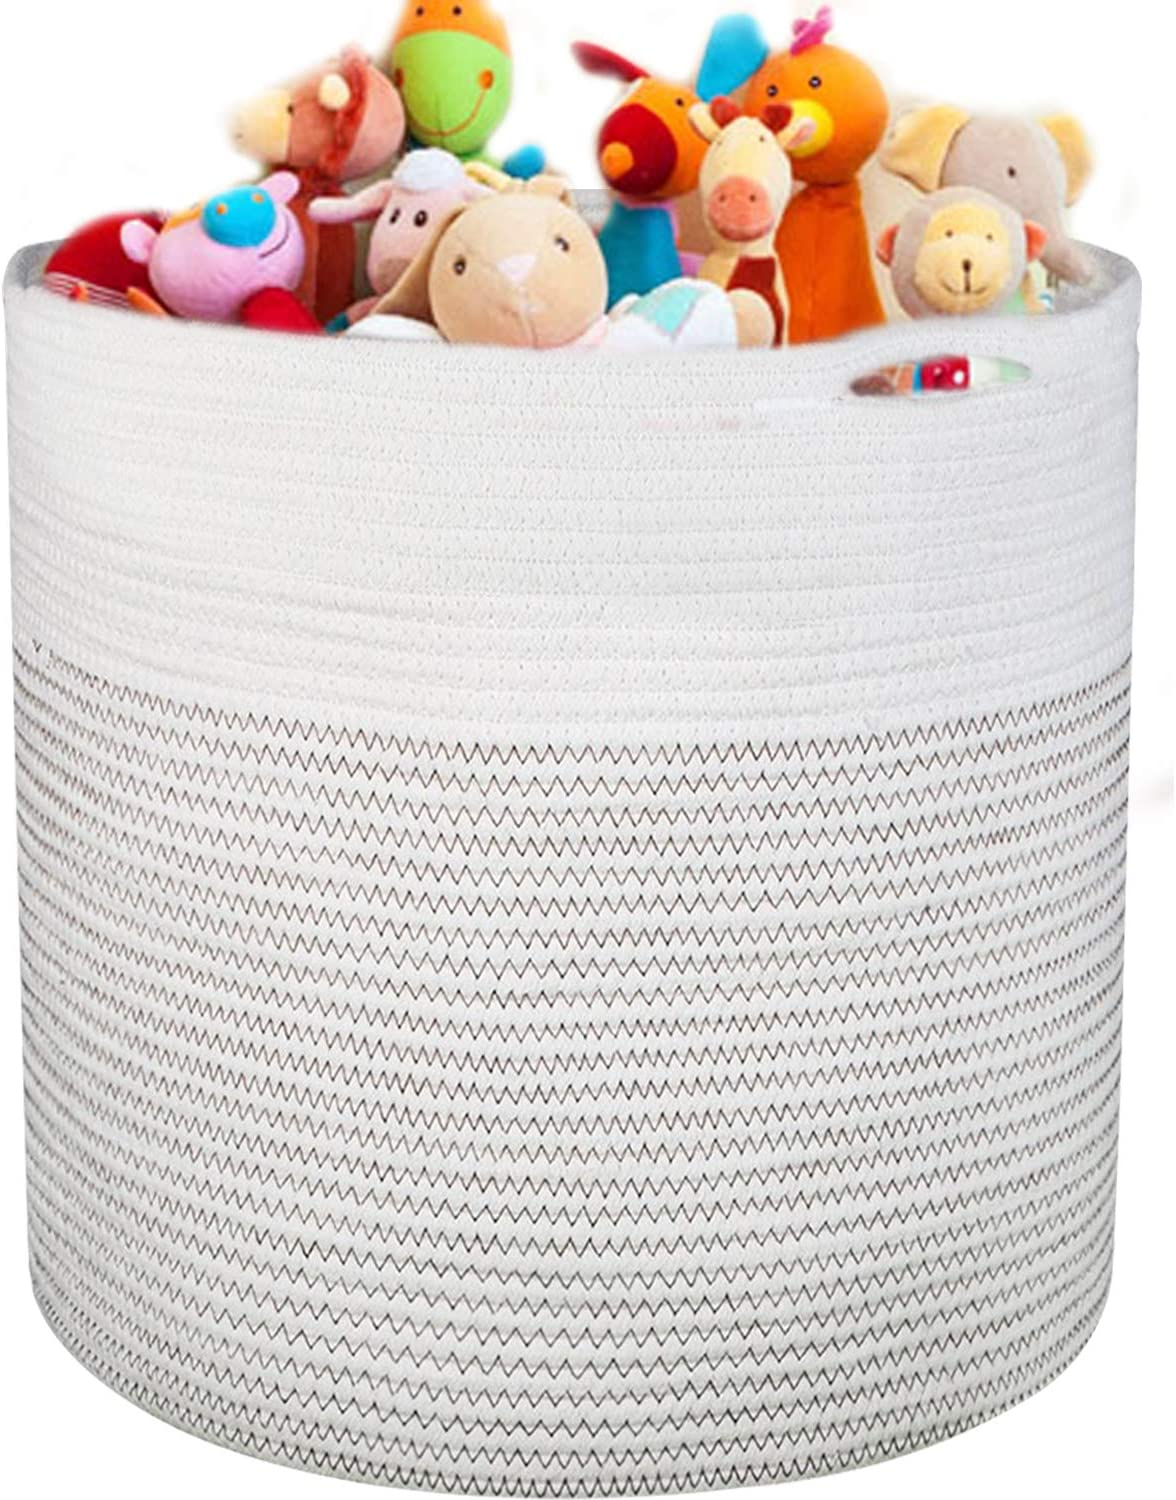 "homyfort Kids Large Toy Chest Storage Organizer,Collapsible Thread Cotton Rope Nursery Laundry Container Basket, Towels,Dirty Clothes-17"" X 16.5"""